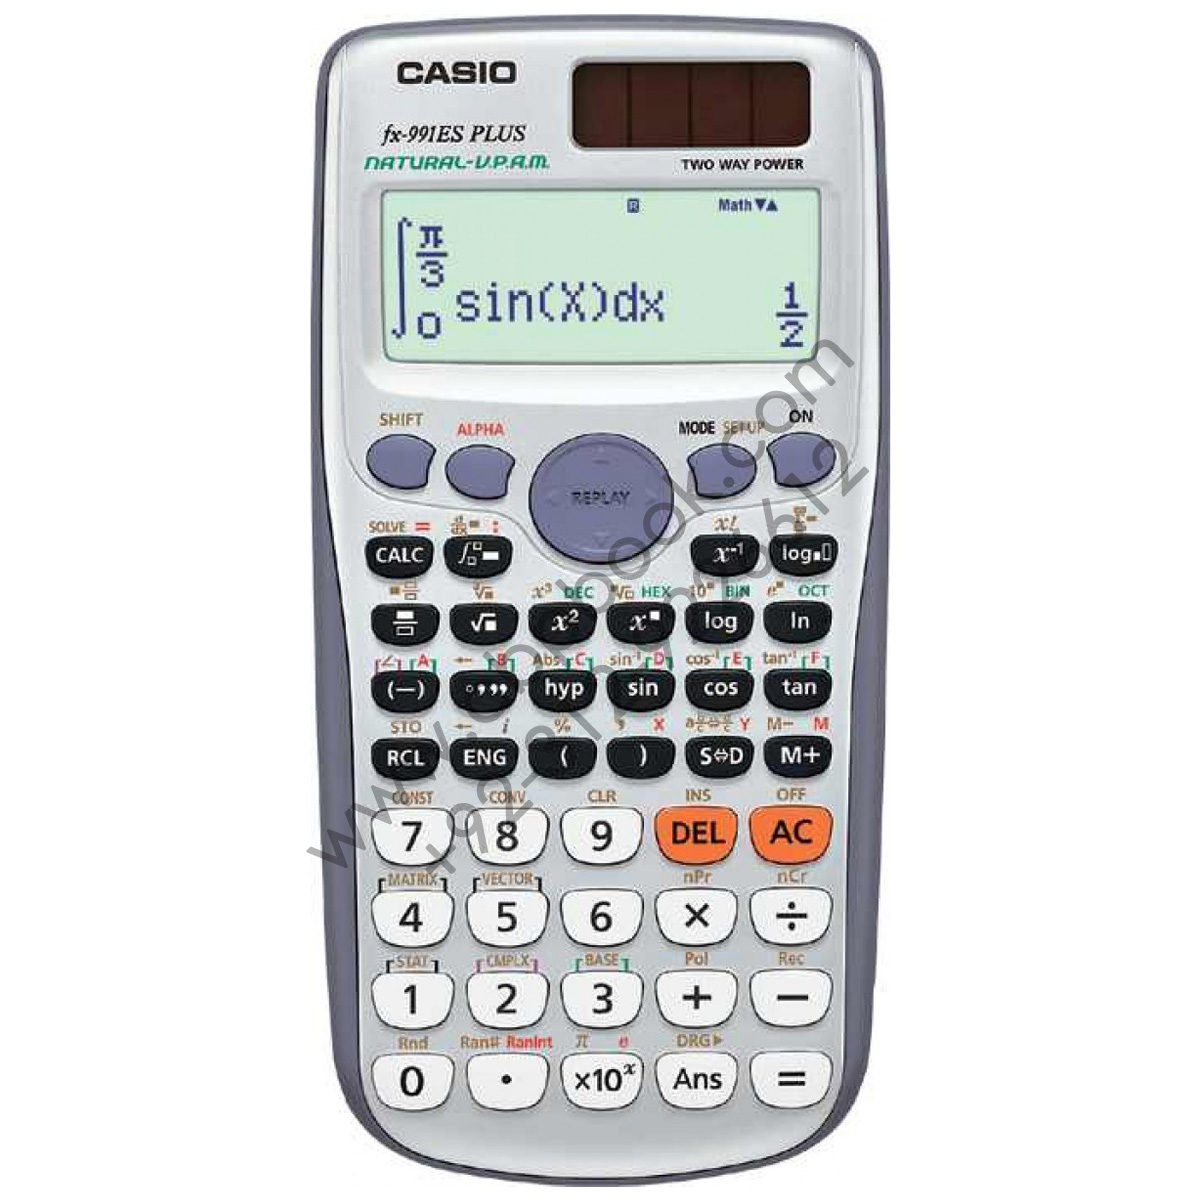 casio scientific calculator fx-991es plus original